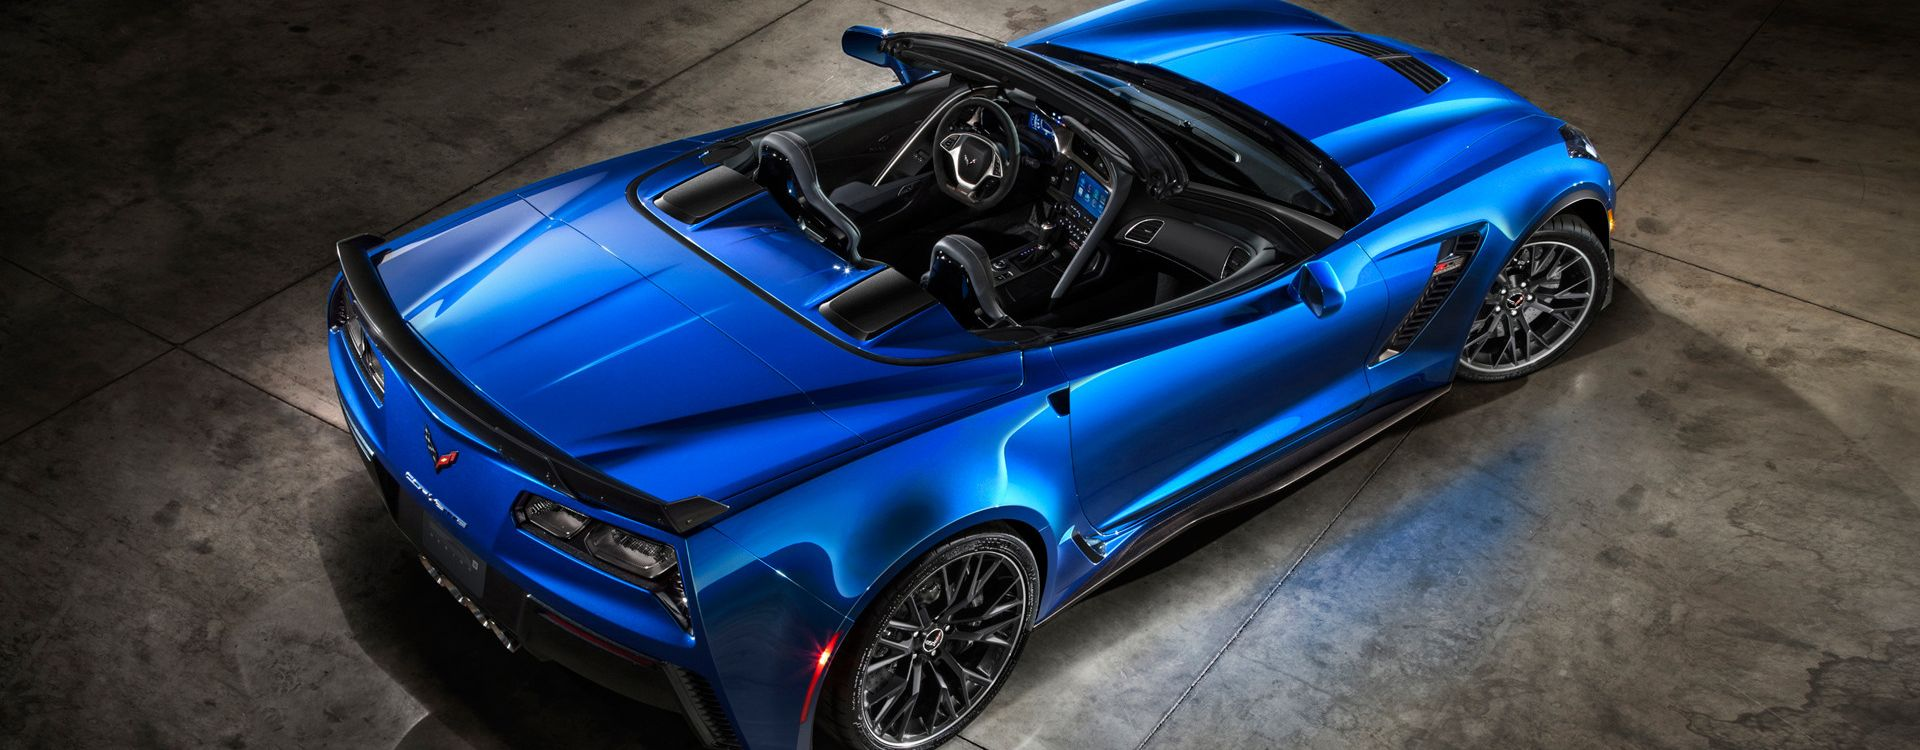 2015 Chevrolet Corvette Z06 Convertible 3 1920x1080